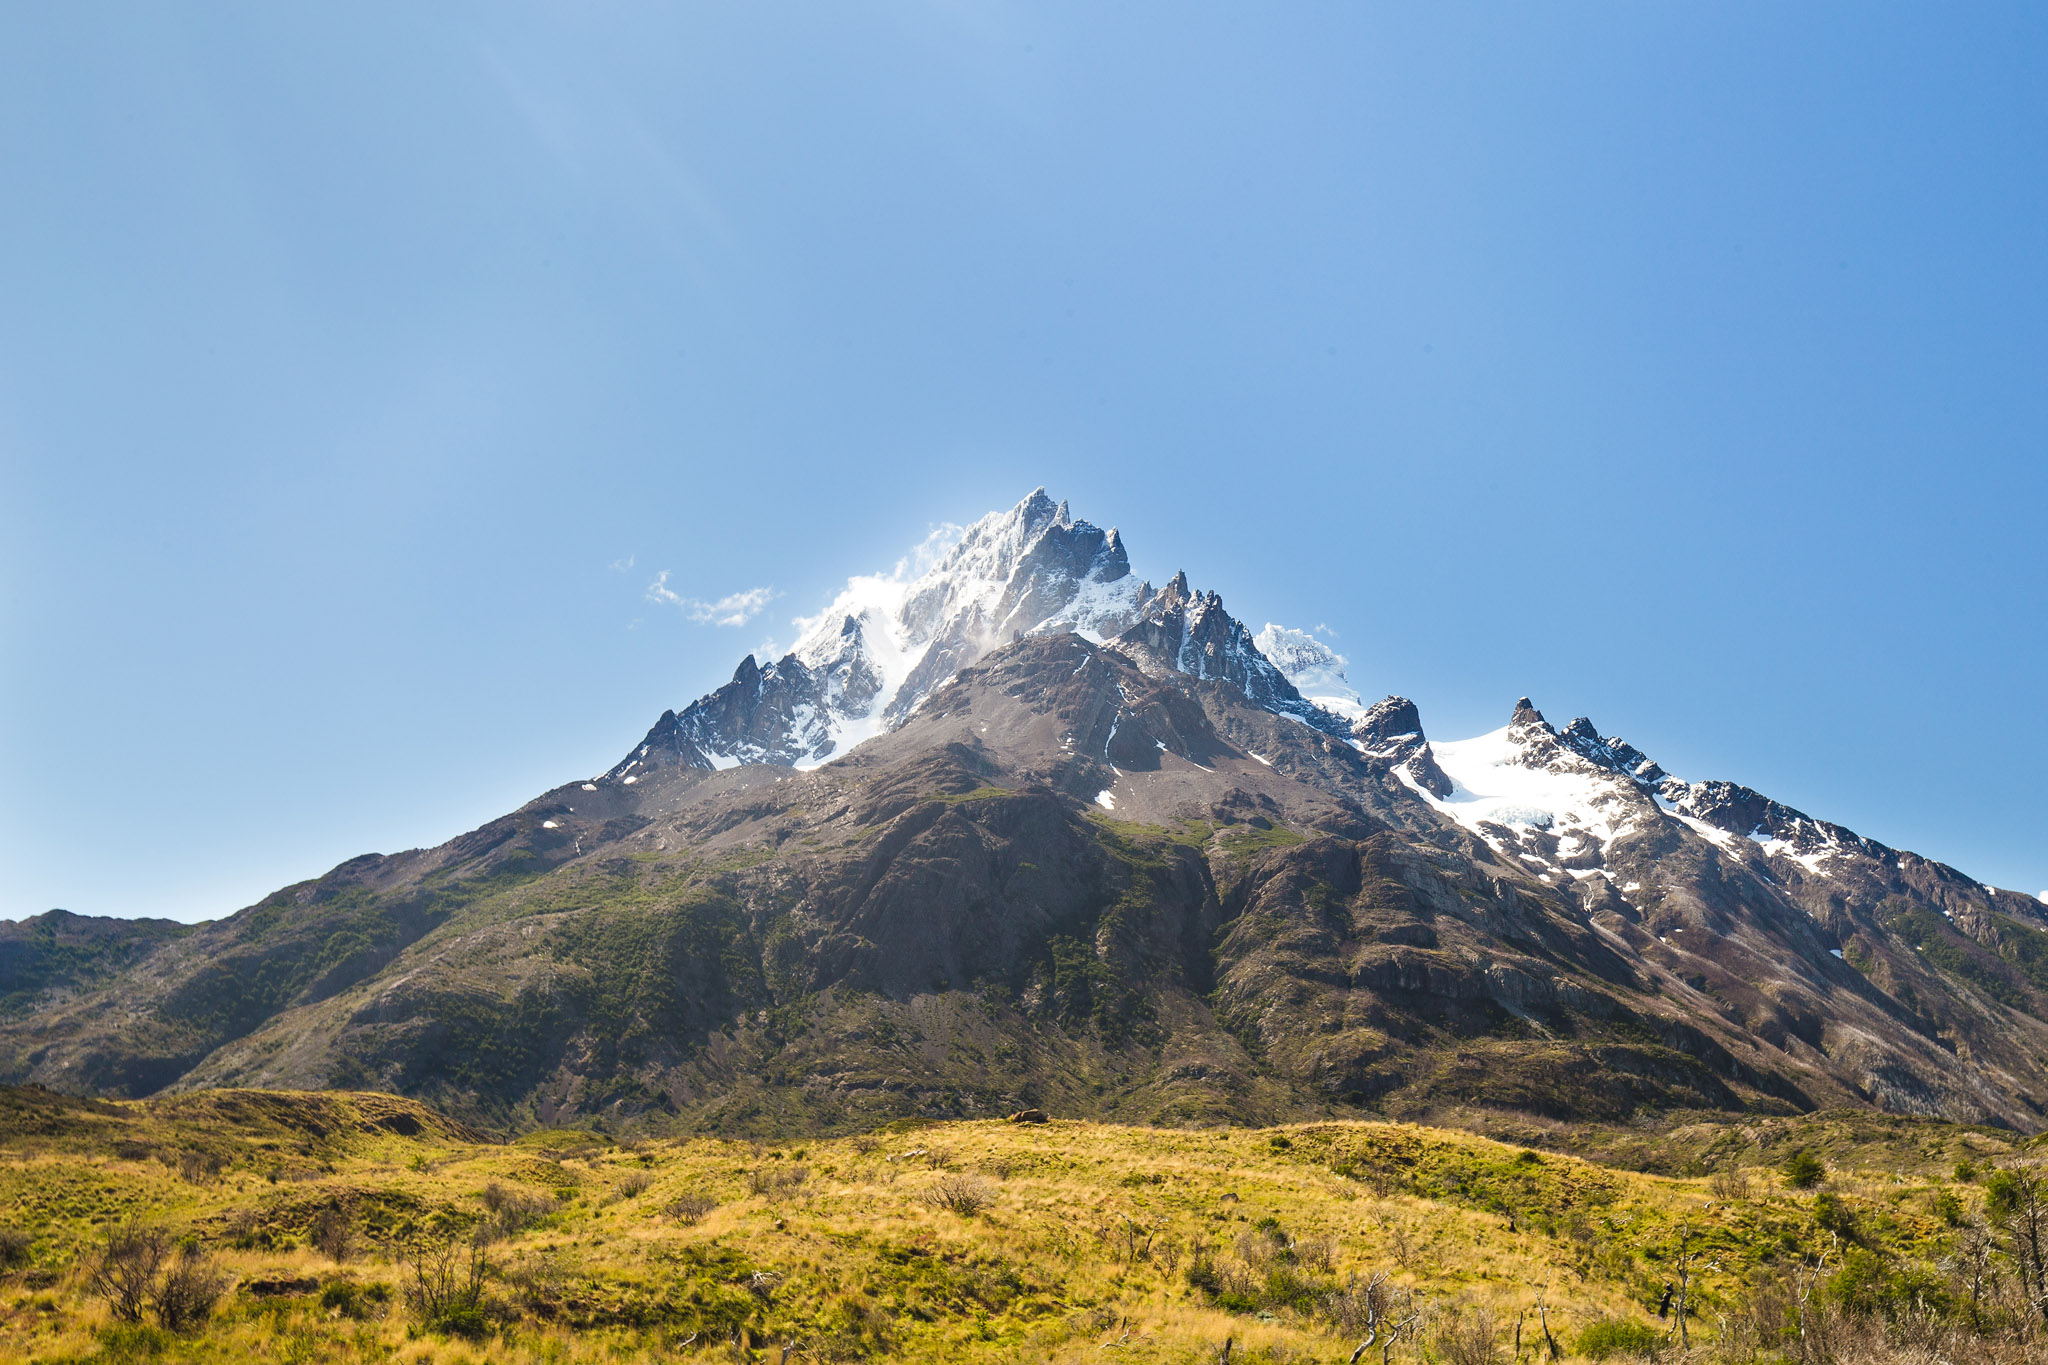 Wedding-Travellers-Overlanding-Destination-Wedding-Chile-Torres-del-Paine-Valle-Frances-Valley-French-snow-ice-mountain-glacial